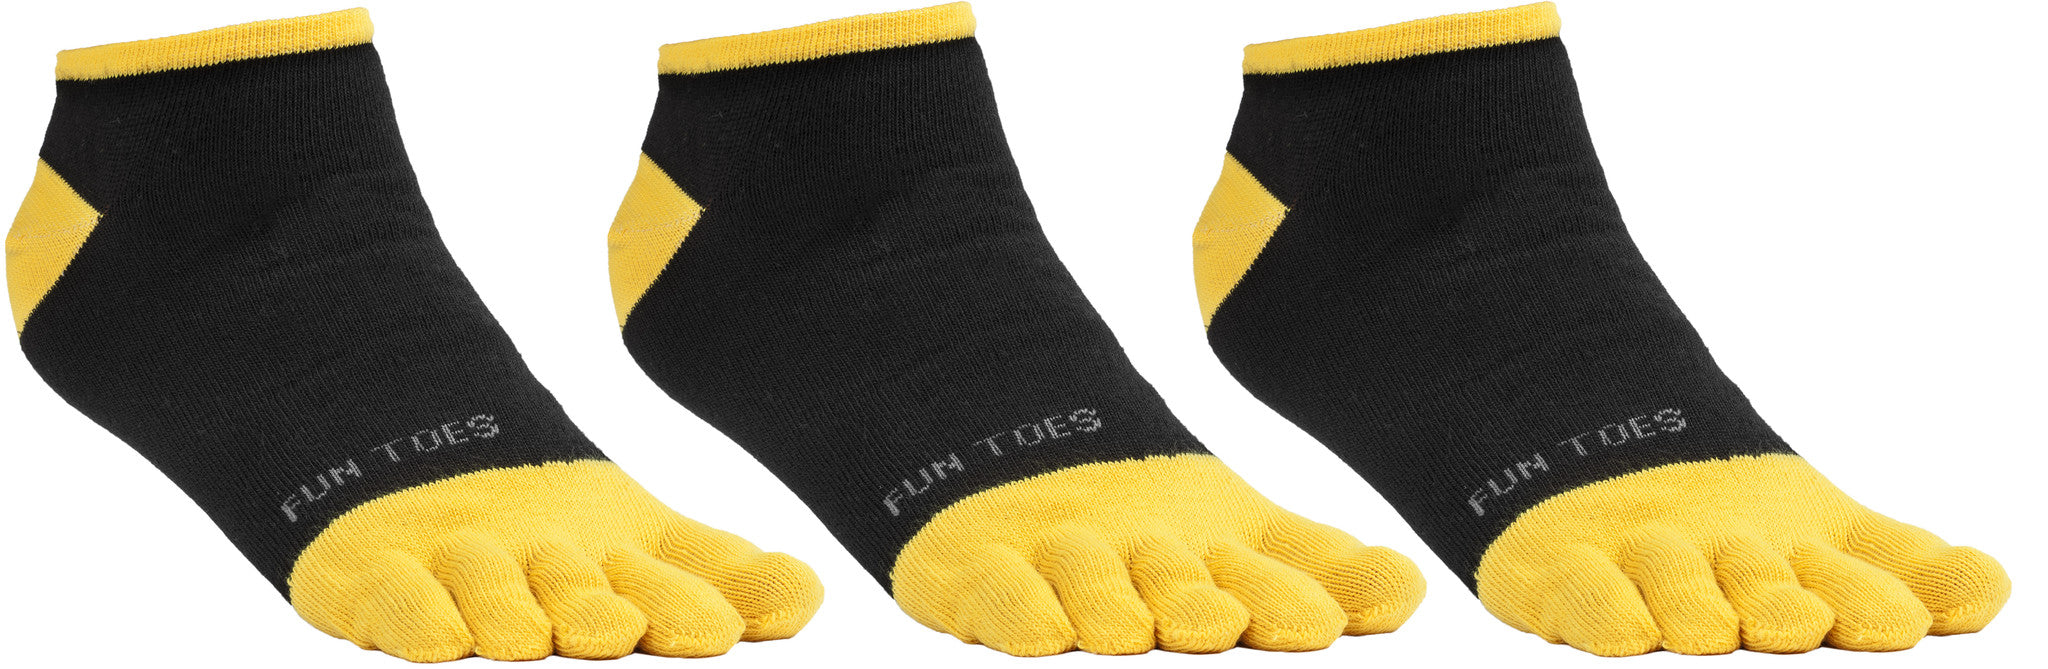 FUN TOES Toe s for Men  Barefoot Running Made s Keep Feet Dry Reduce Risk s